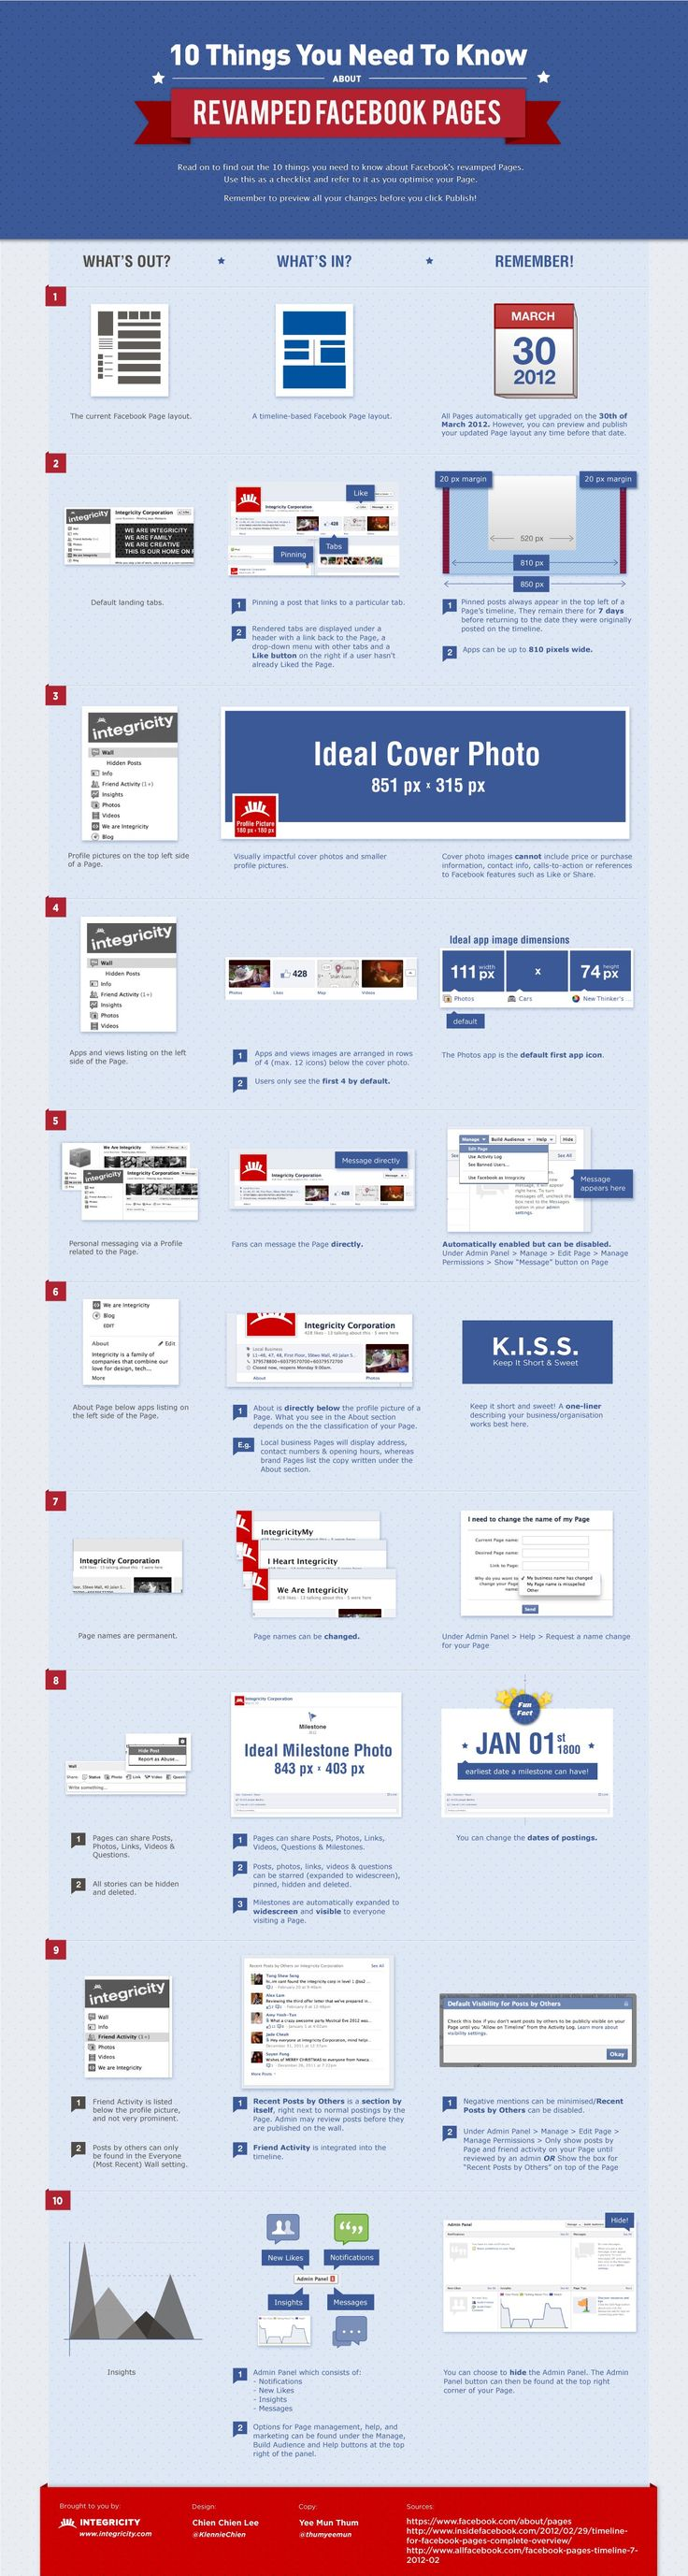 Facebook Timelines, things you need to know. #flowchart #infographic #chart